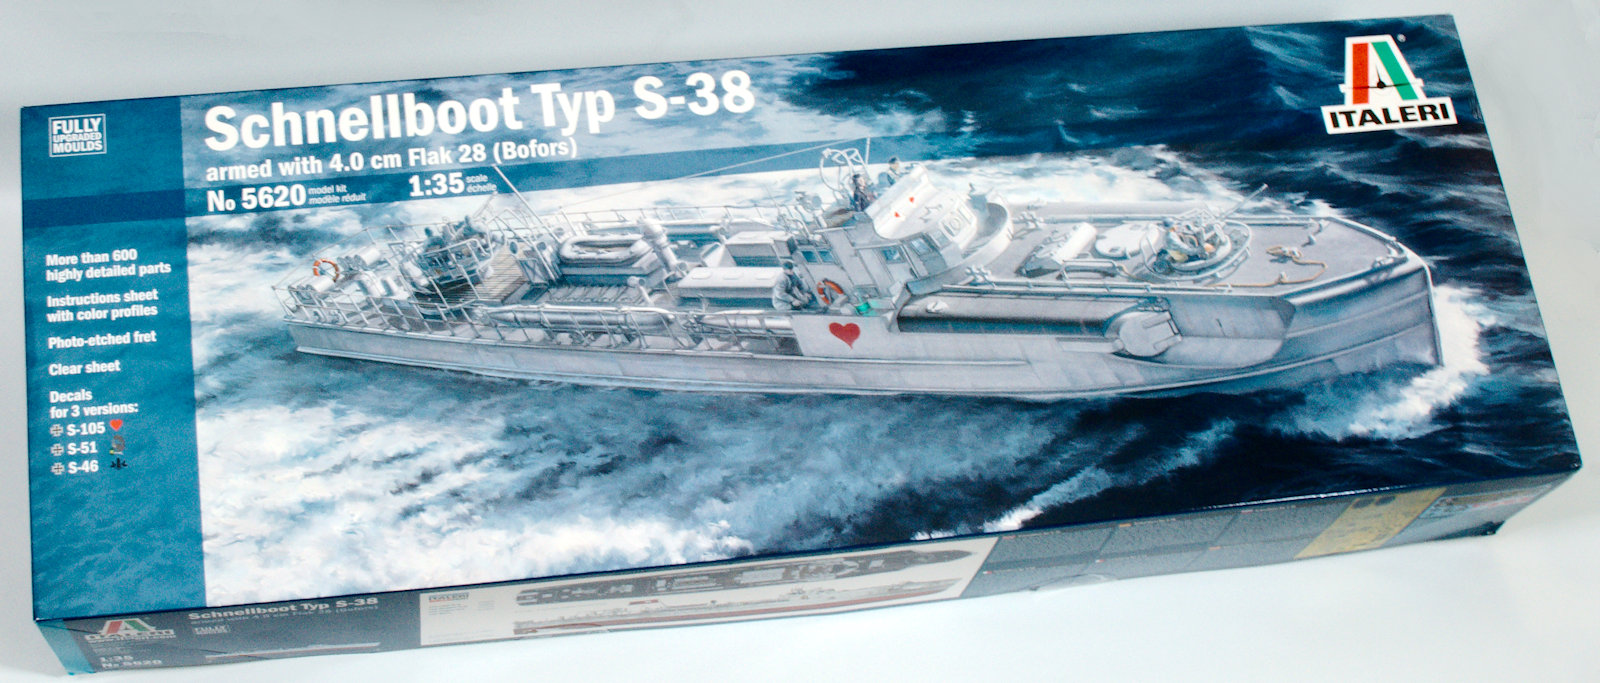 Italeri made the S-38 and S-100